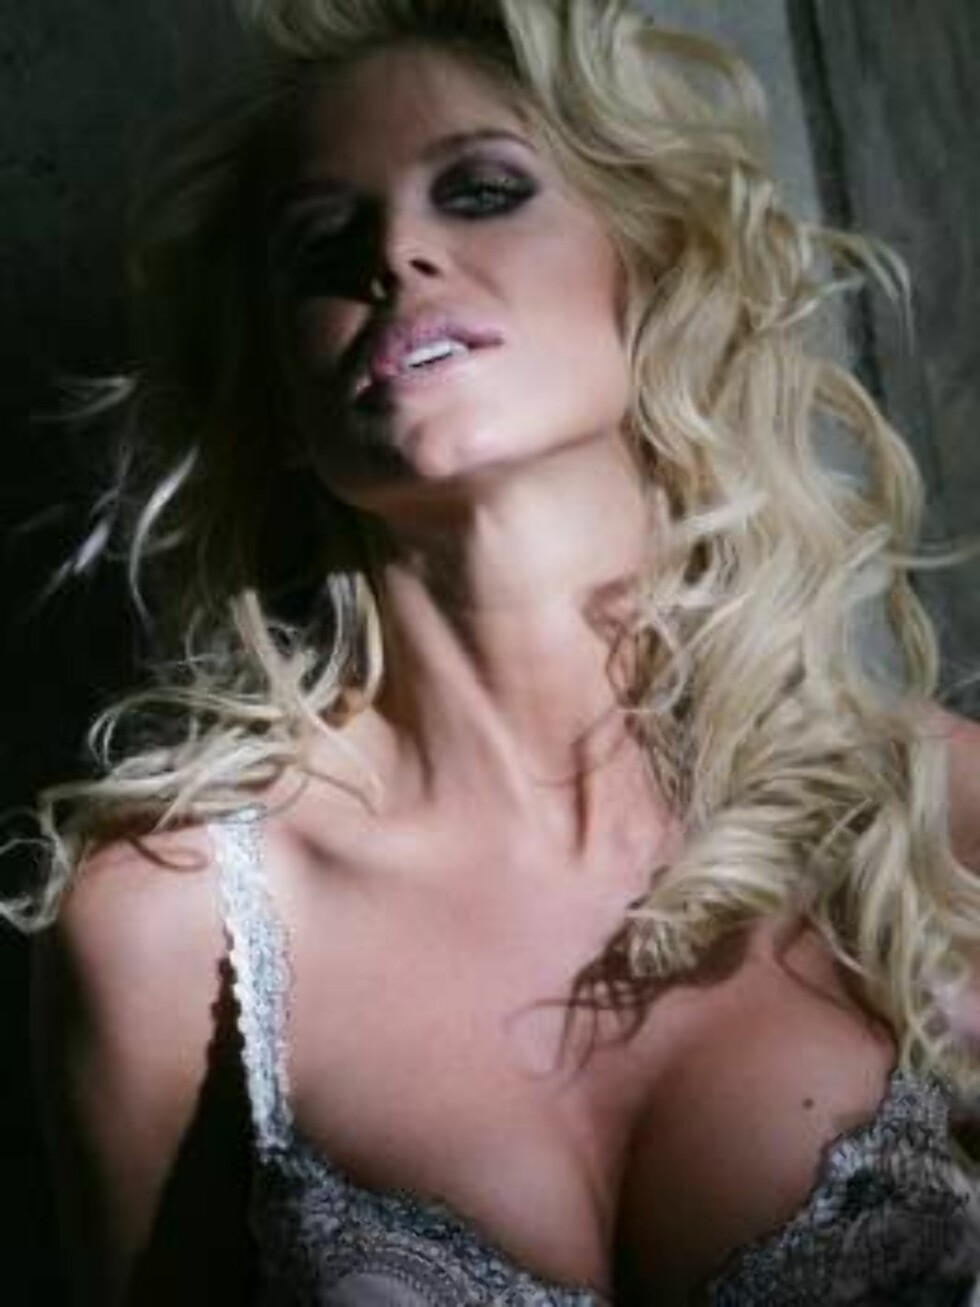 London 2006-03-21  Victoria Silvstedt at a photo shoot in London for her new lingerie line called VVS. The clothes she is wearing is VVS. Very Victoria Secret.    Photo: Thomas Engstrom Code: 2011  COPYRIGHT STELLA PICTURES Foto: Stella Pictures